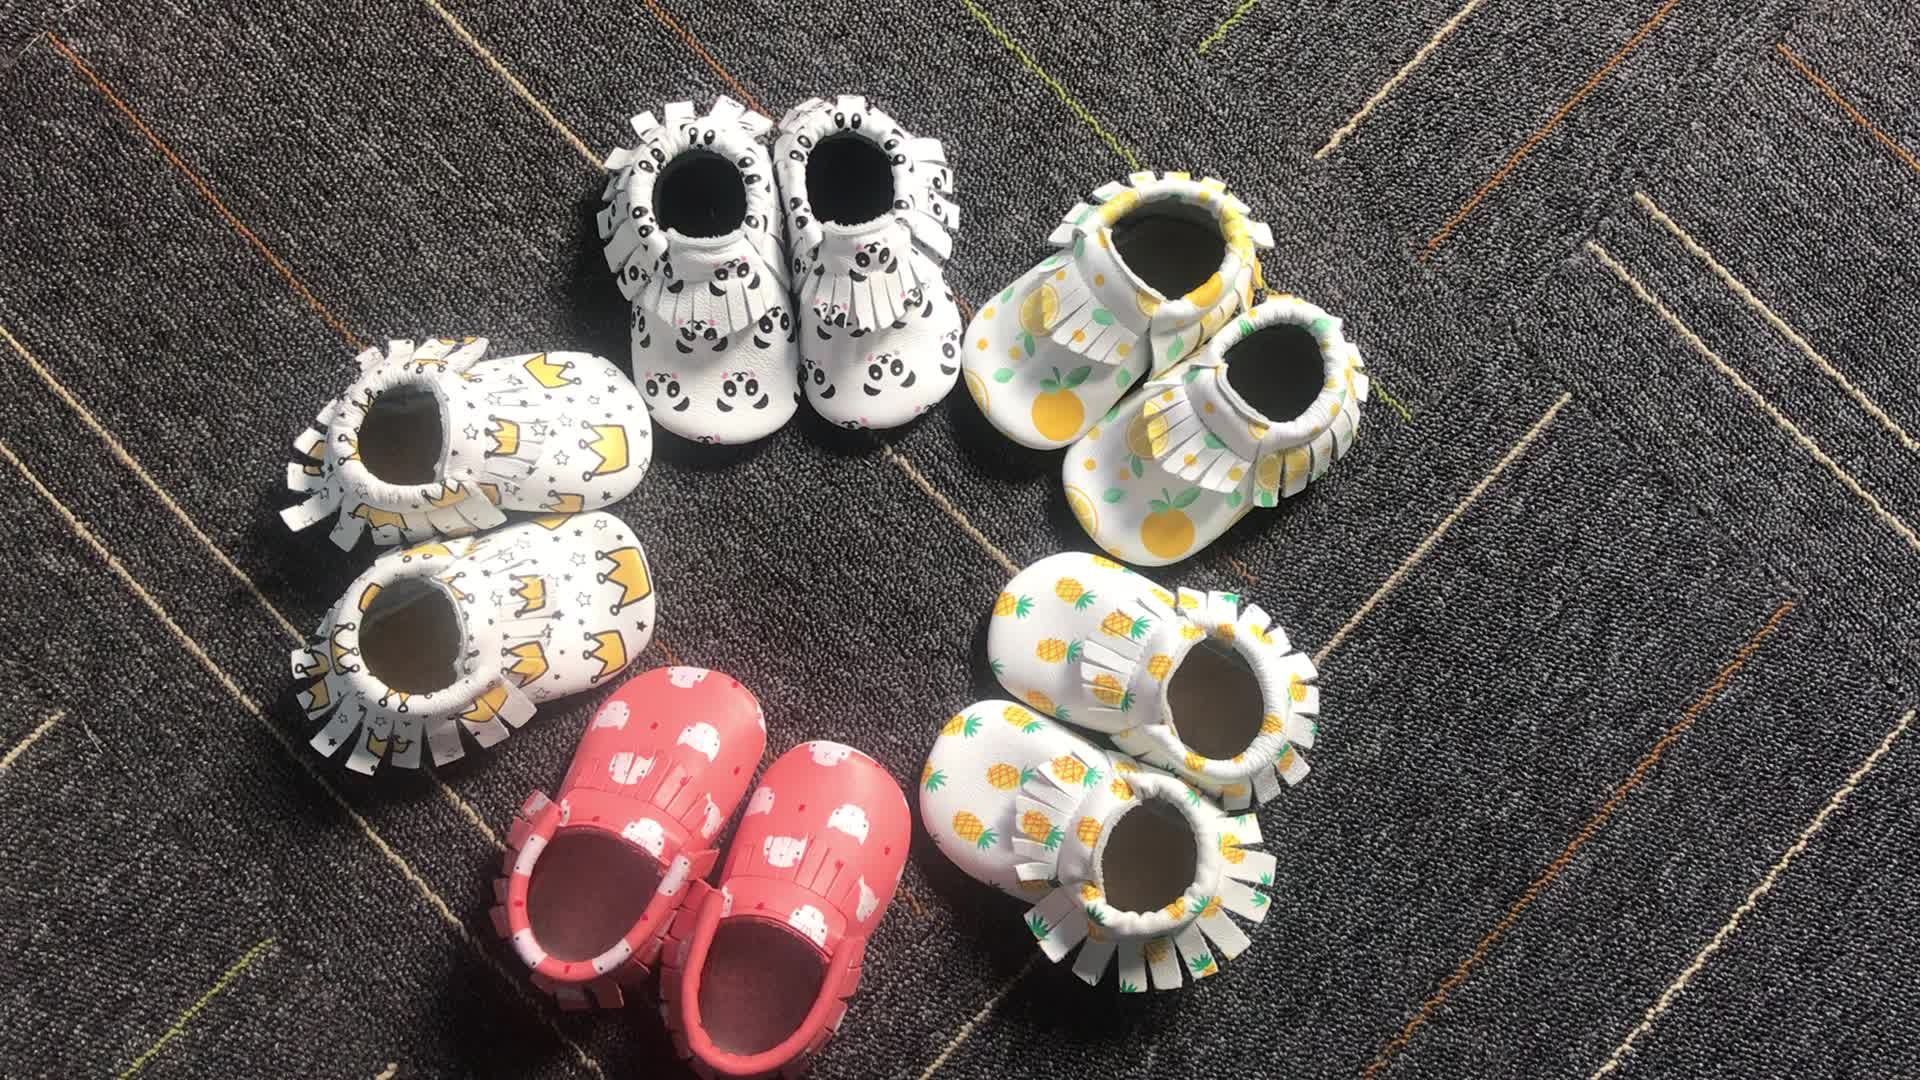 2018 new kids shoes wholesale baby moccasins toddler leather shoes